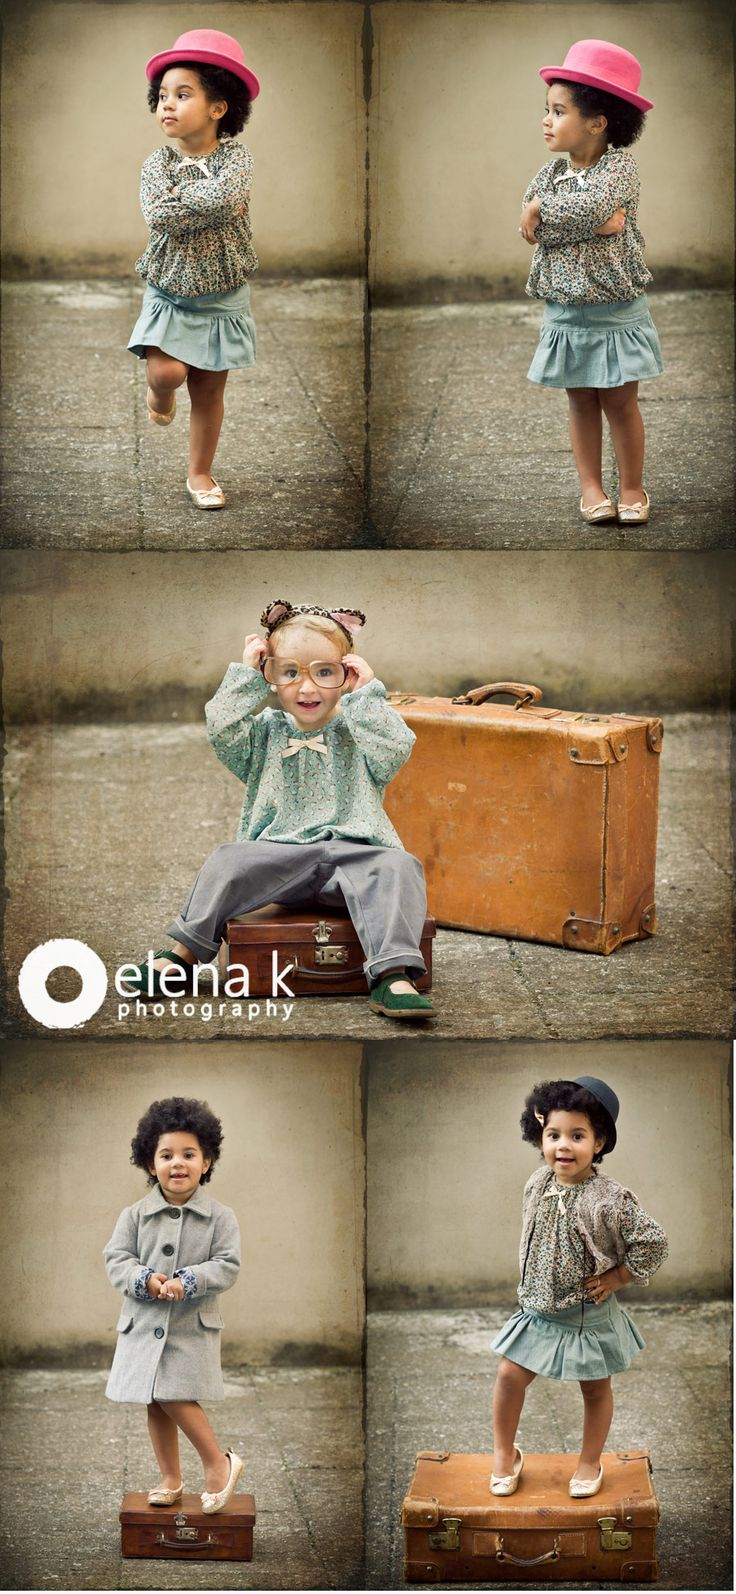 commercial child photography - elena k photography, Milano - Italy